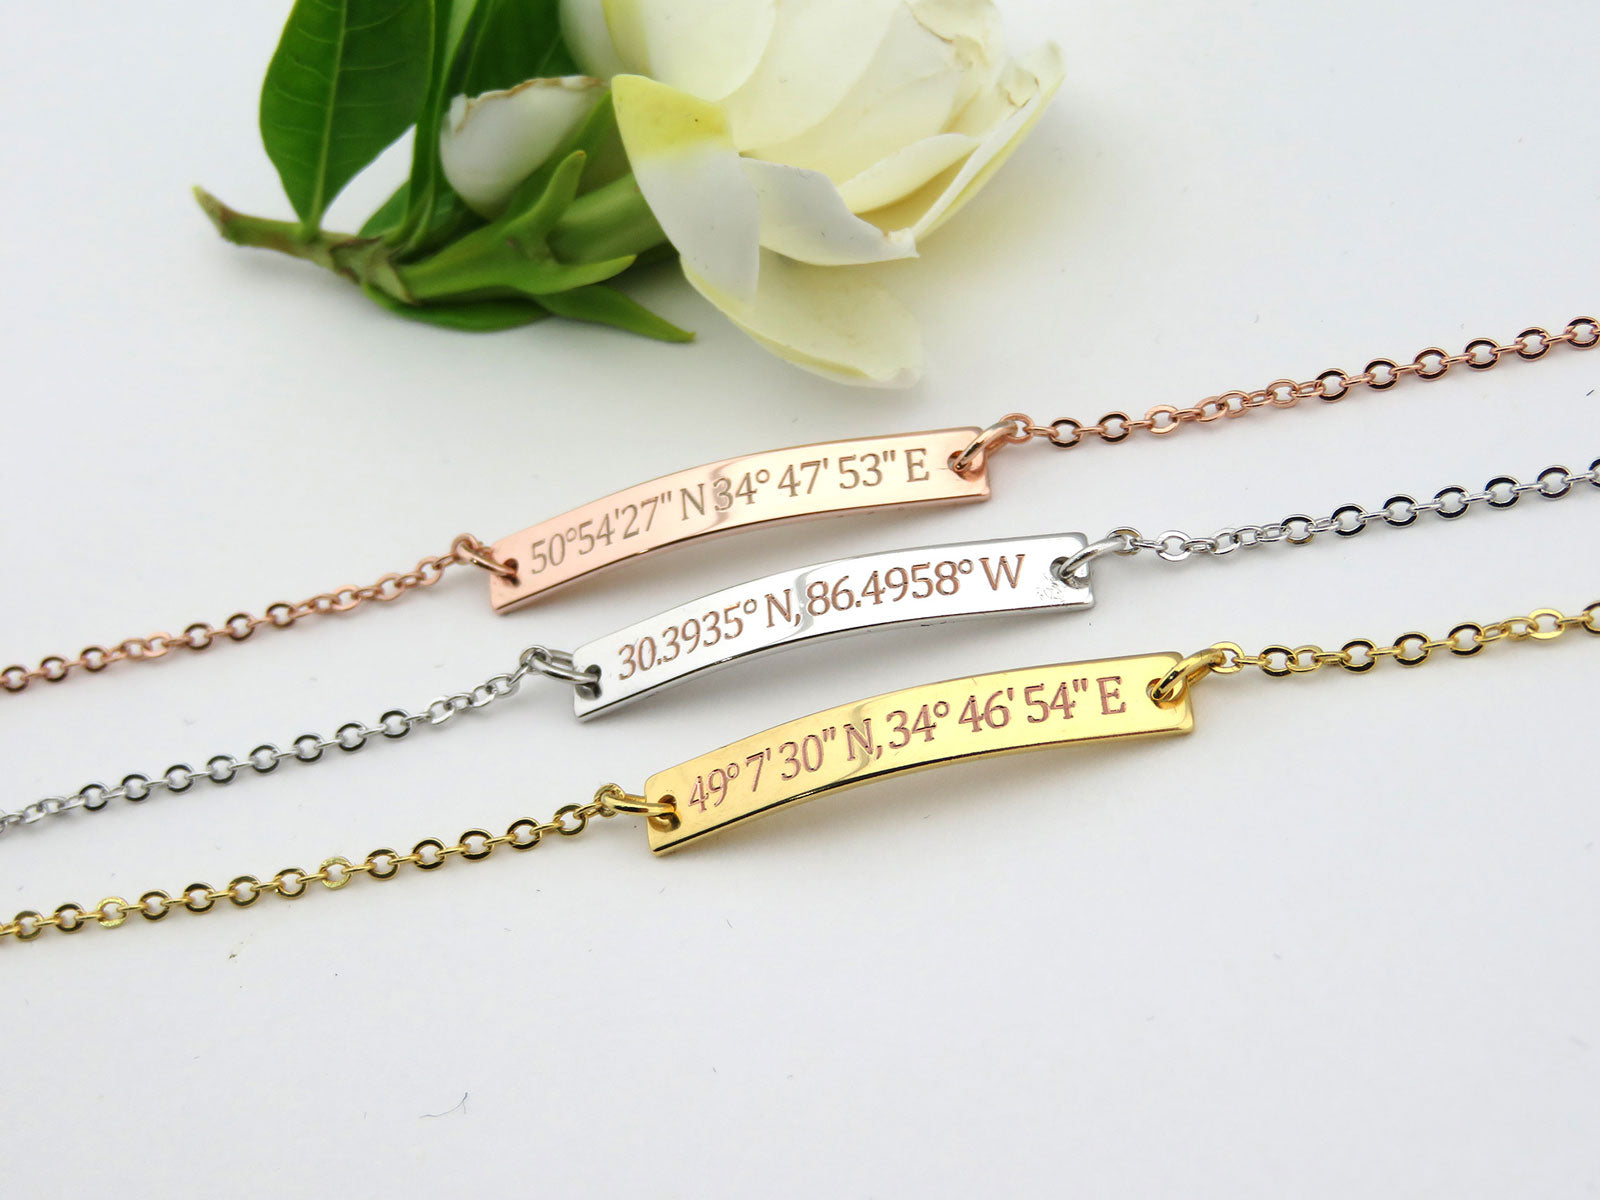 gps fullxfull memory il products collections reclaimed recycled personalized sweetheart coordinate festival jlkb bracelet wealth travel simple anniversary metal copper